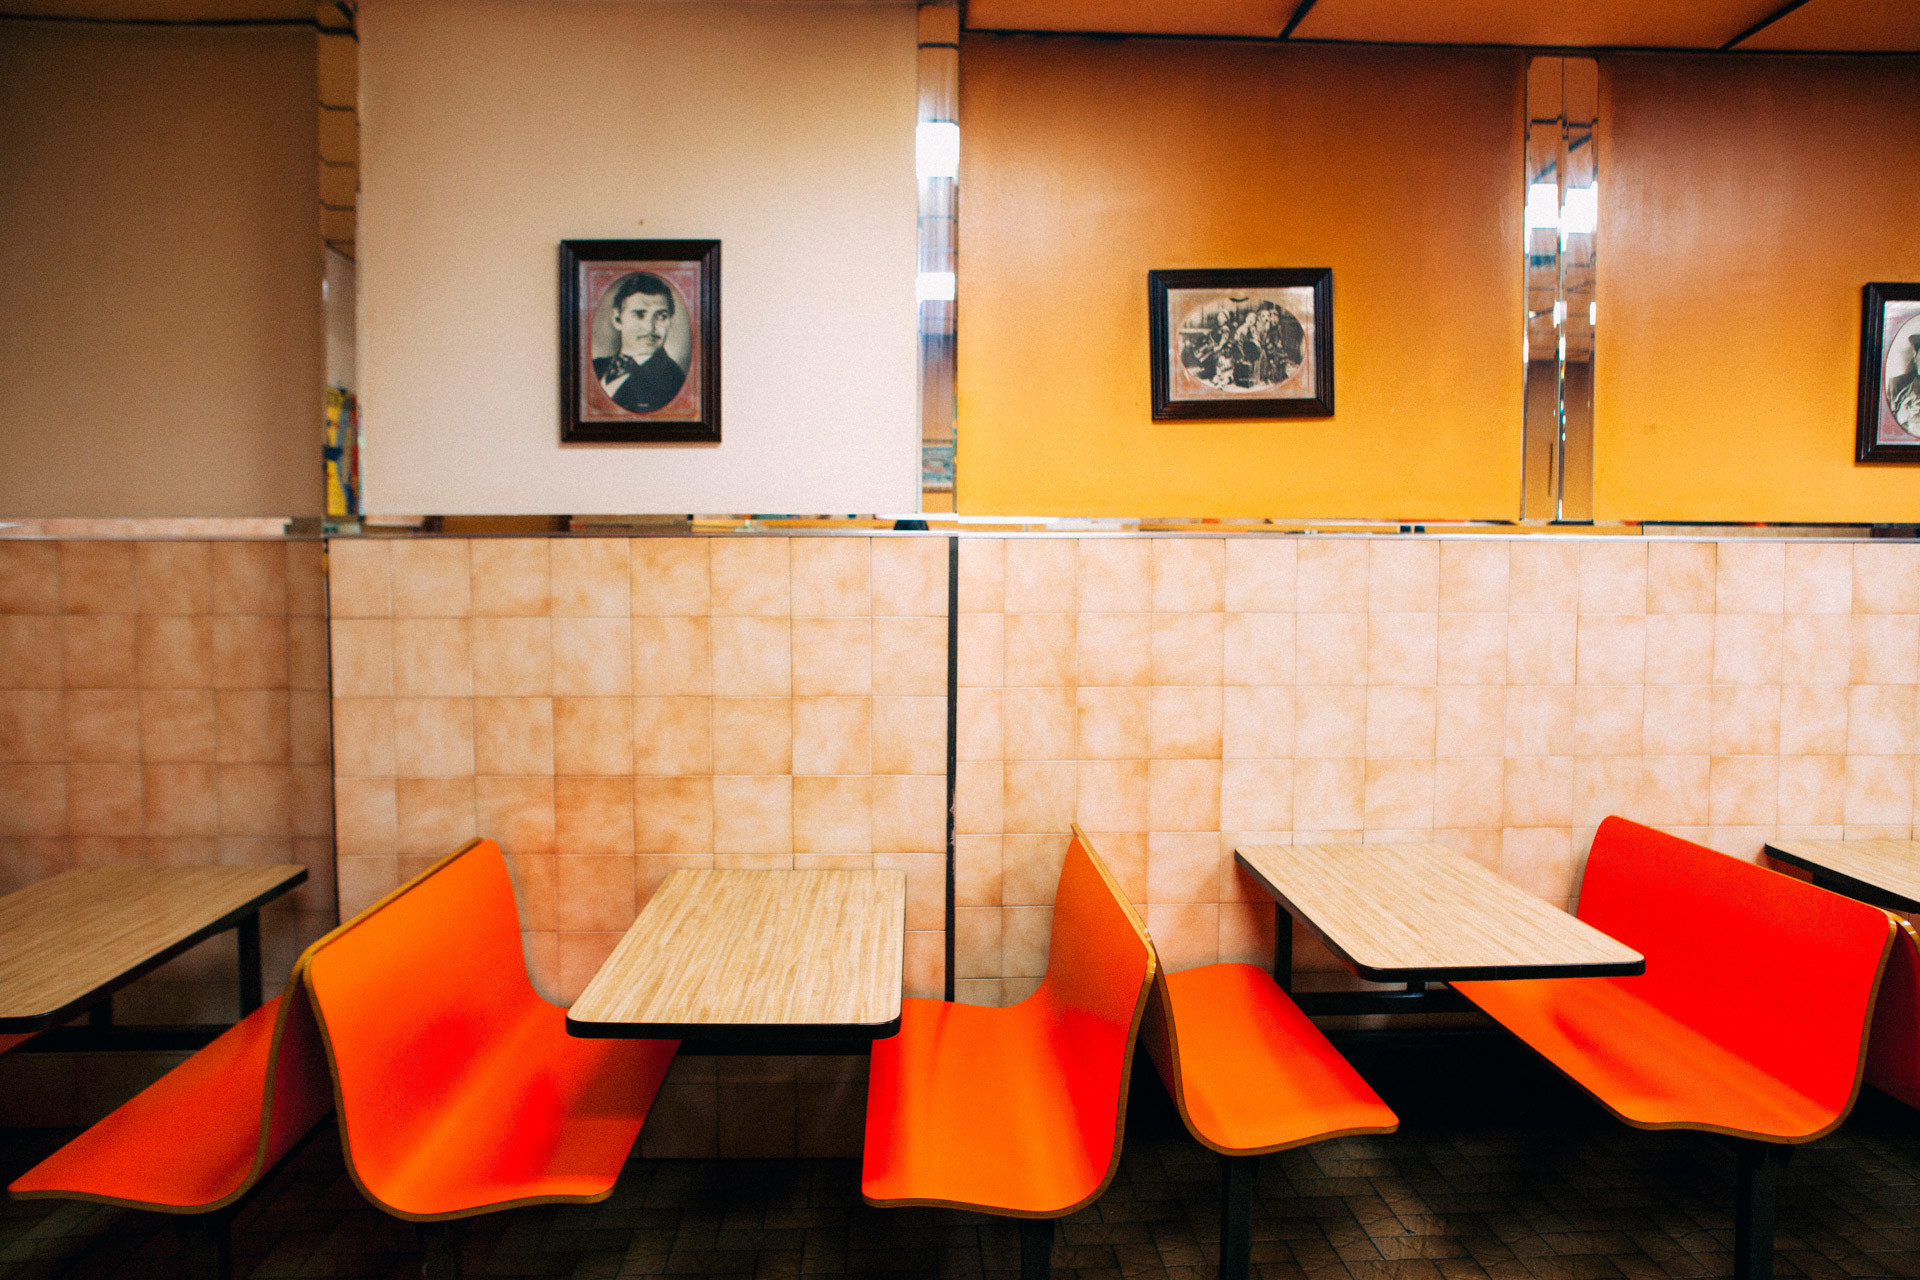 Food + Drink indoor wall floor color red orange room yellow interior design art Design restaurant furniture colored